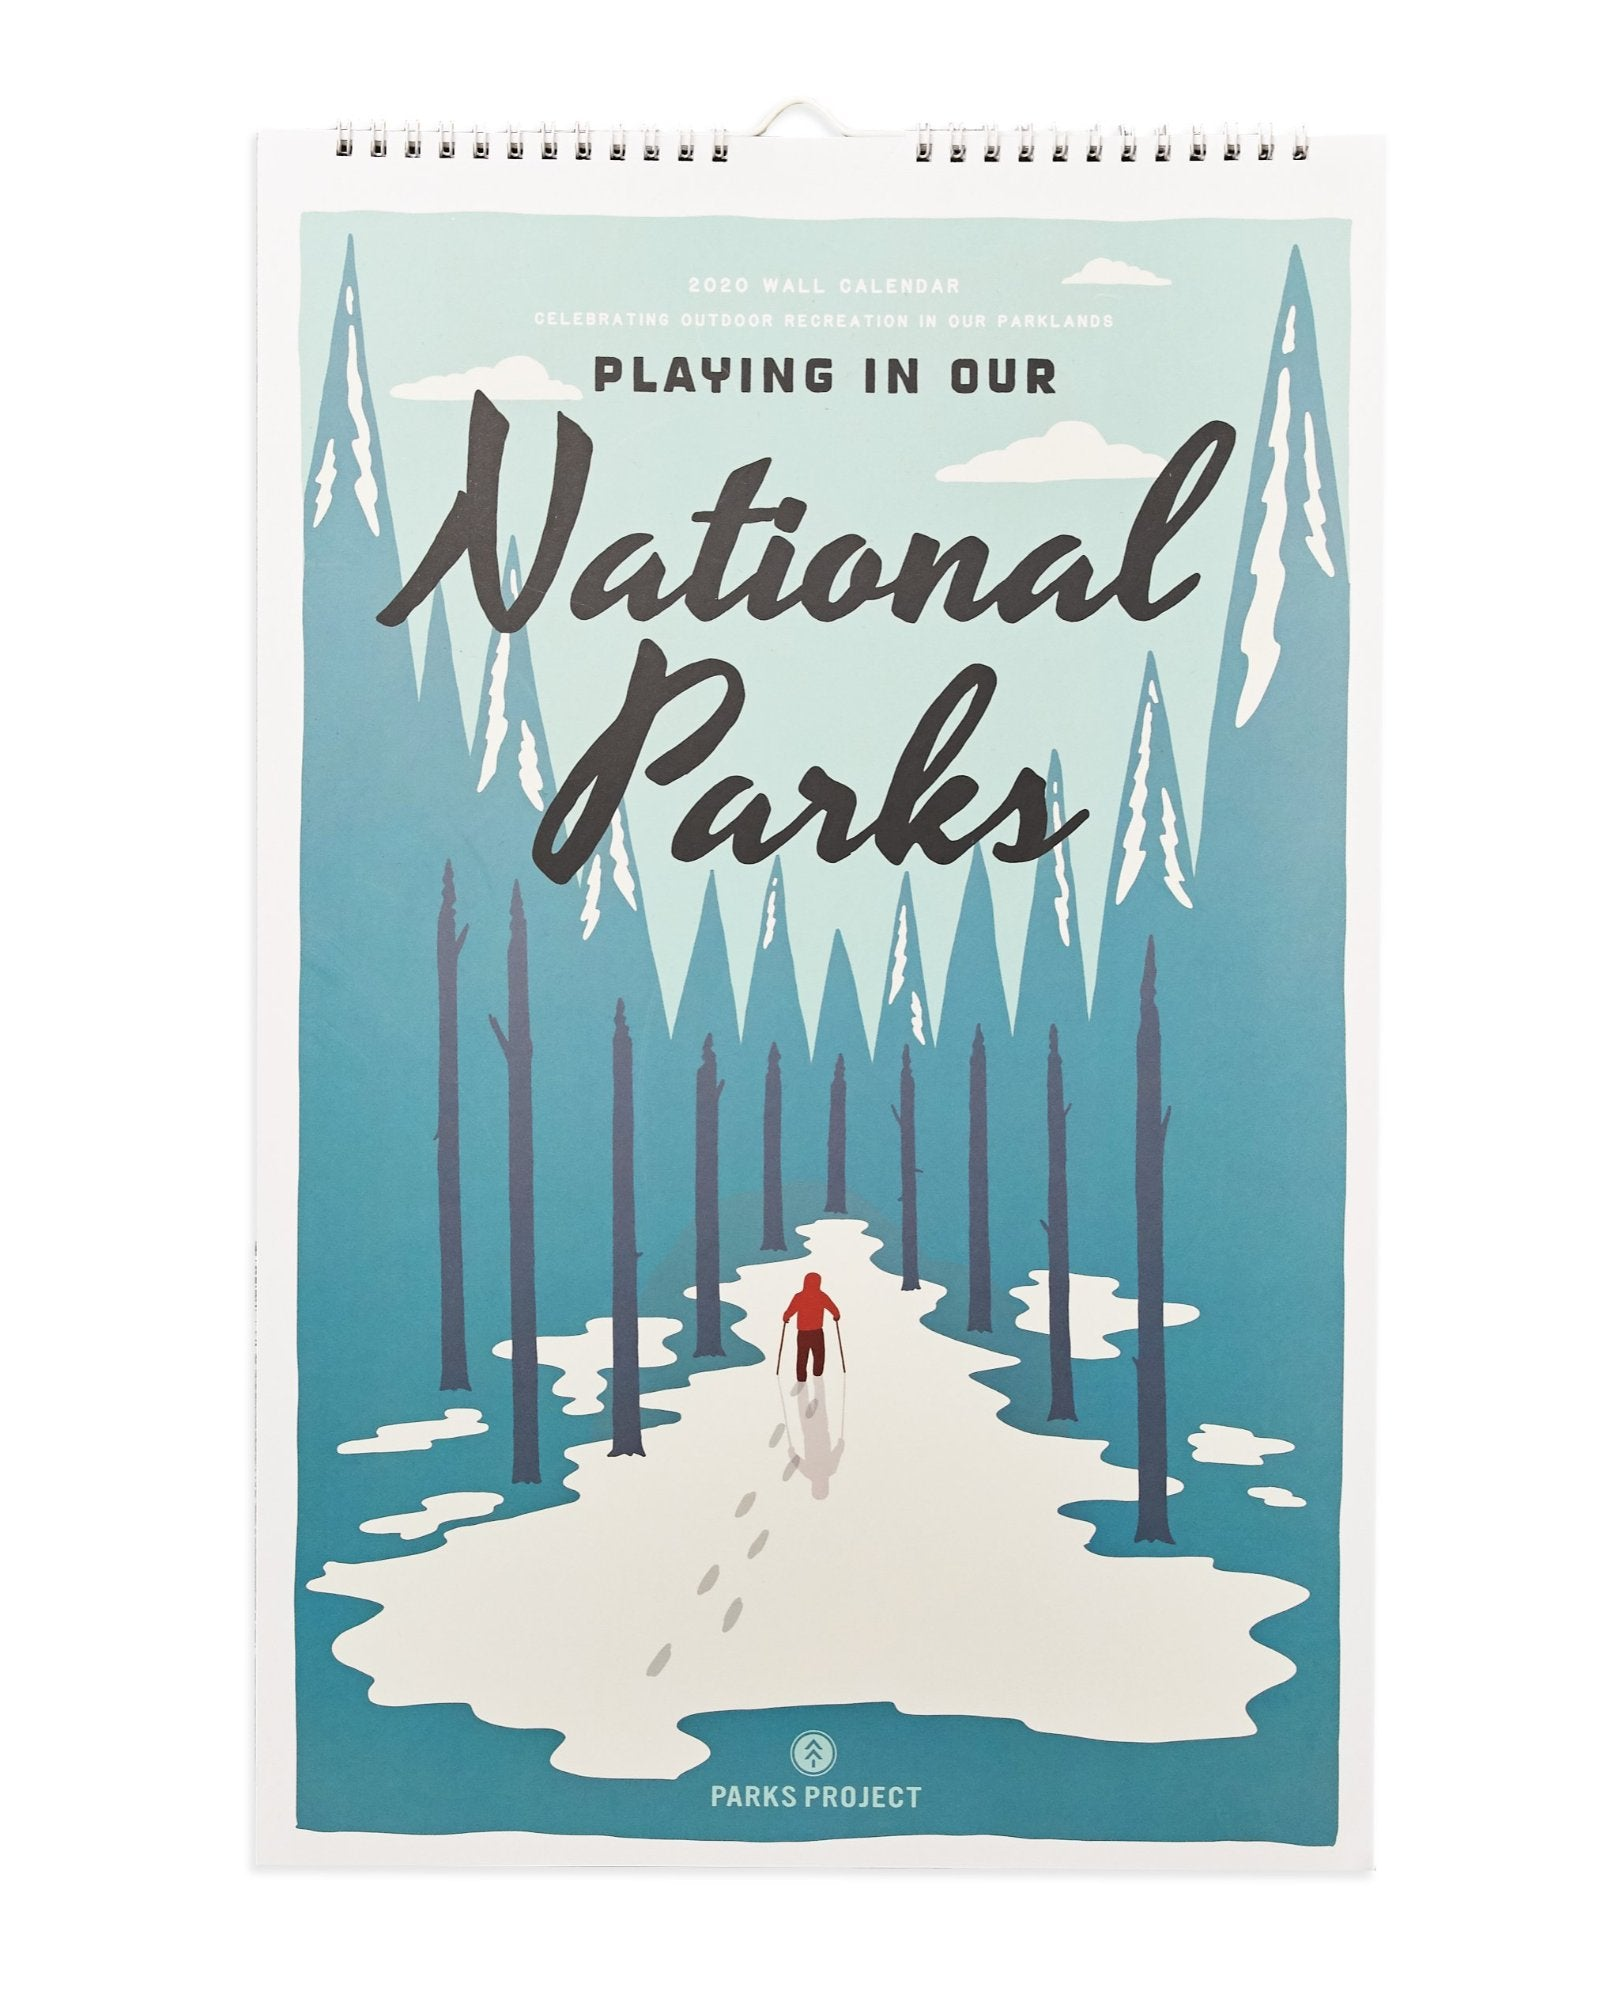 Calendrier National 2020.Playing In Our National Parks 2020 Wall Calendar Playing In Our National Parks 2020 Wall Calendar